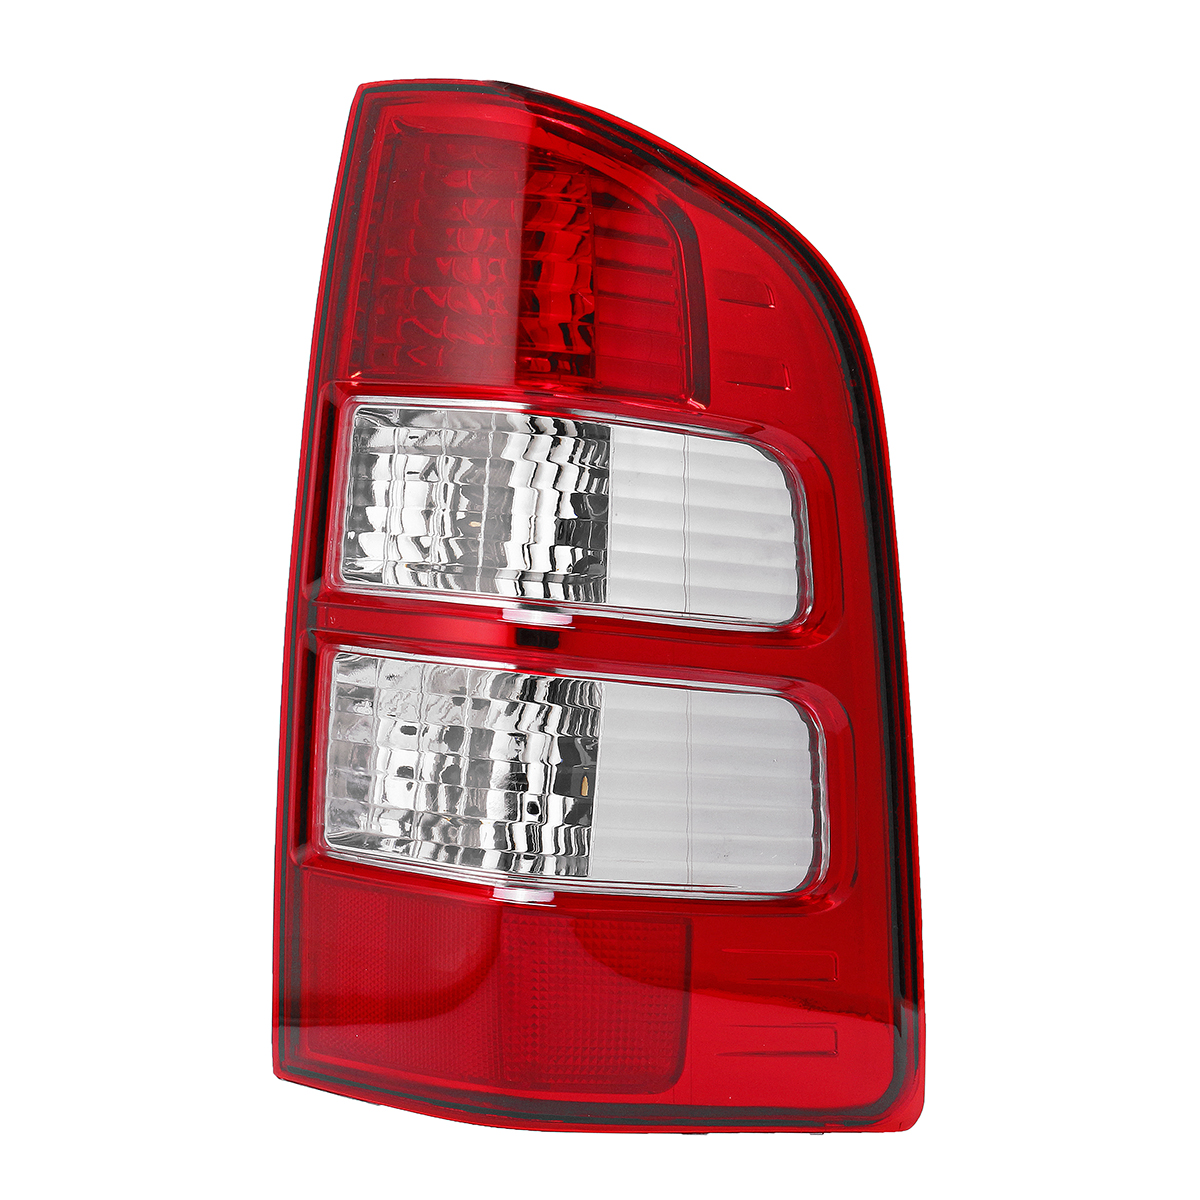 Car Right Rear Tail Light Assembly Brake Lamp with Bulbs for Ford Ranger Thunder Pickup Truck 2006-2011